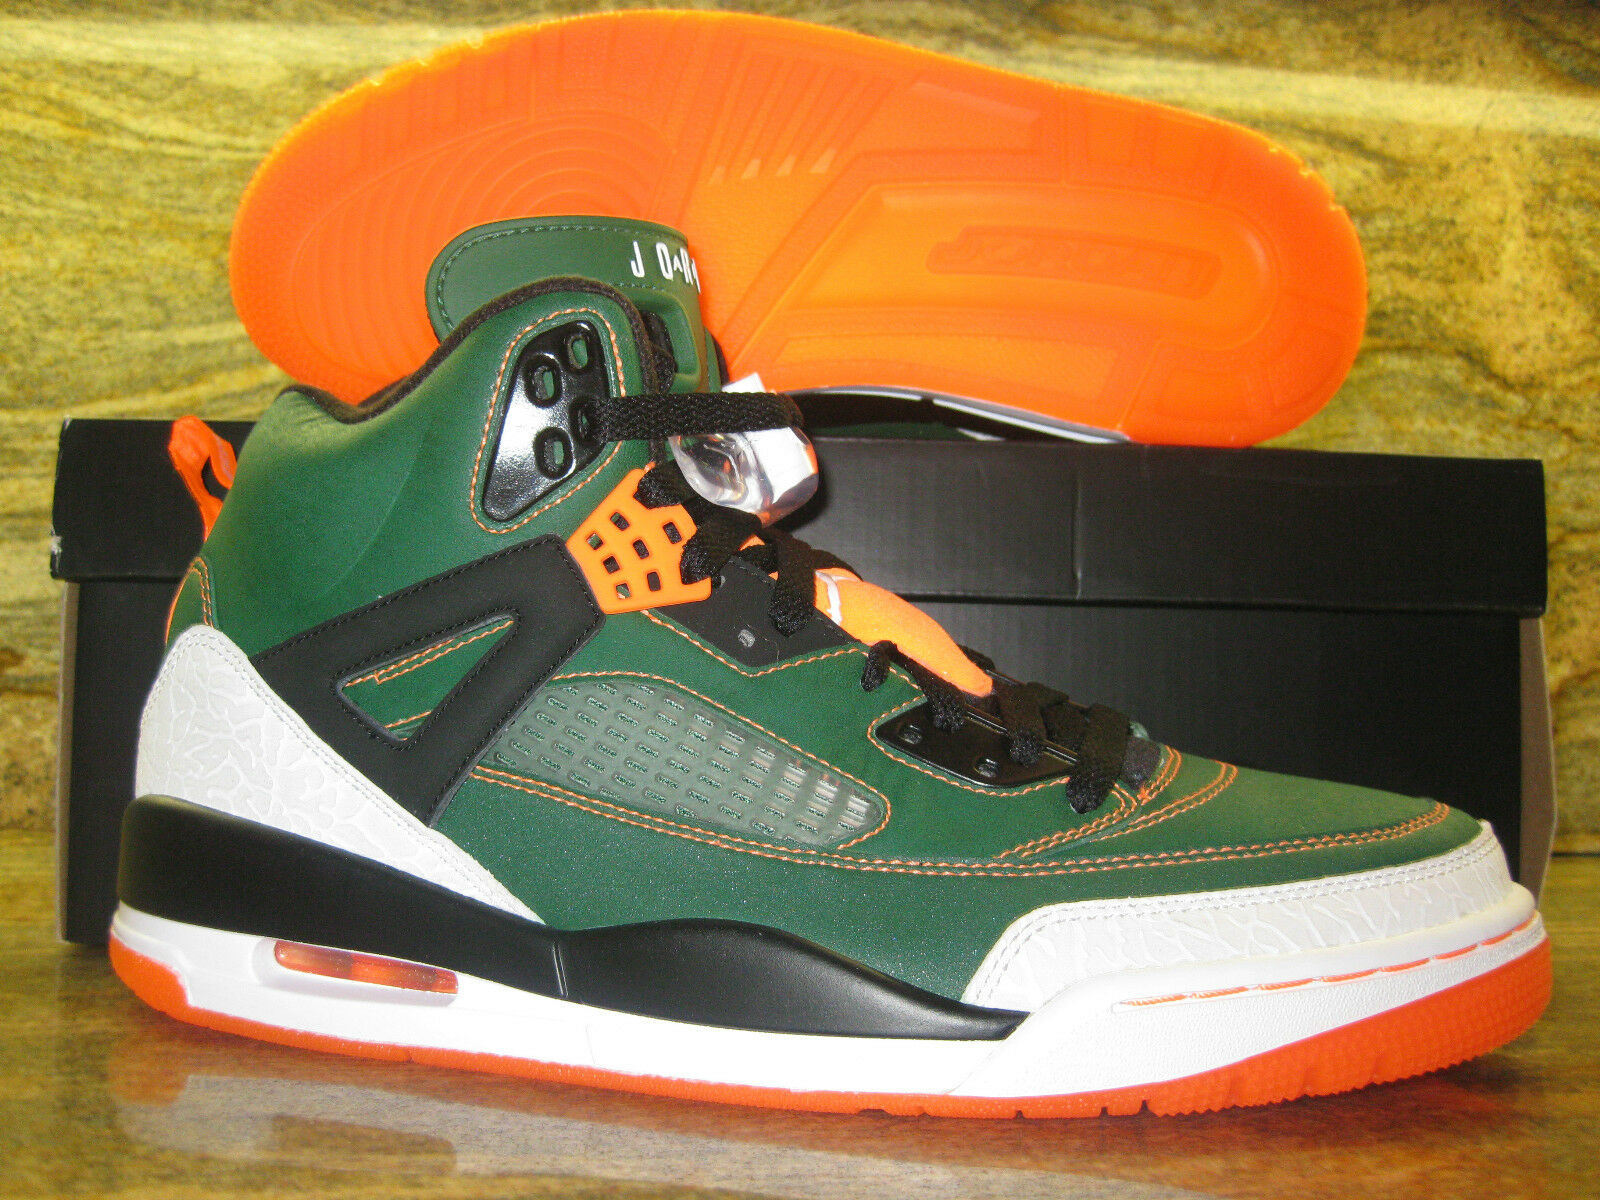 Nike Air Jordan Spizike Promo Sample SZ 8 UM University of Miami PE SoleFly Sole